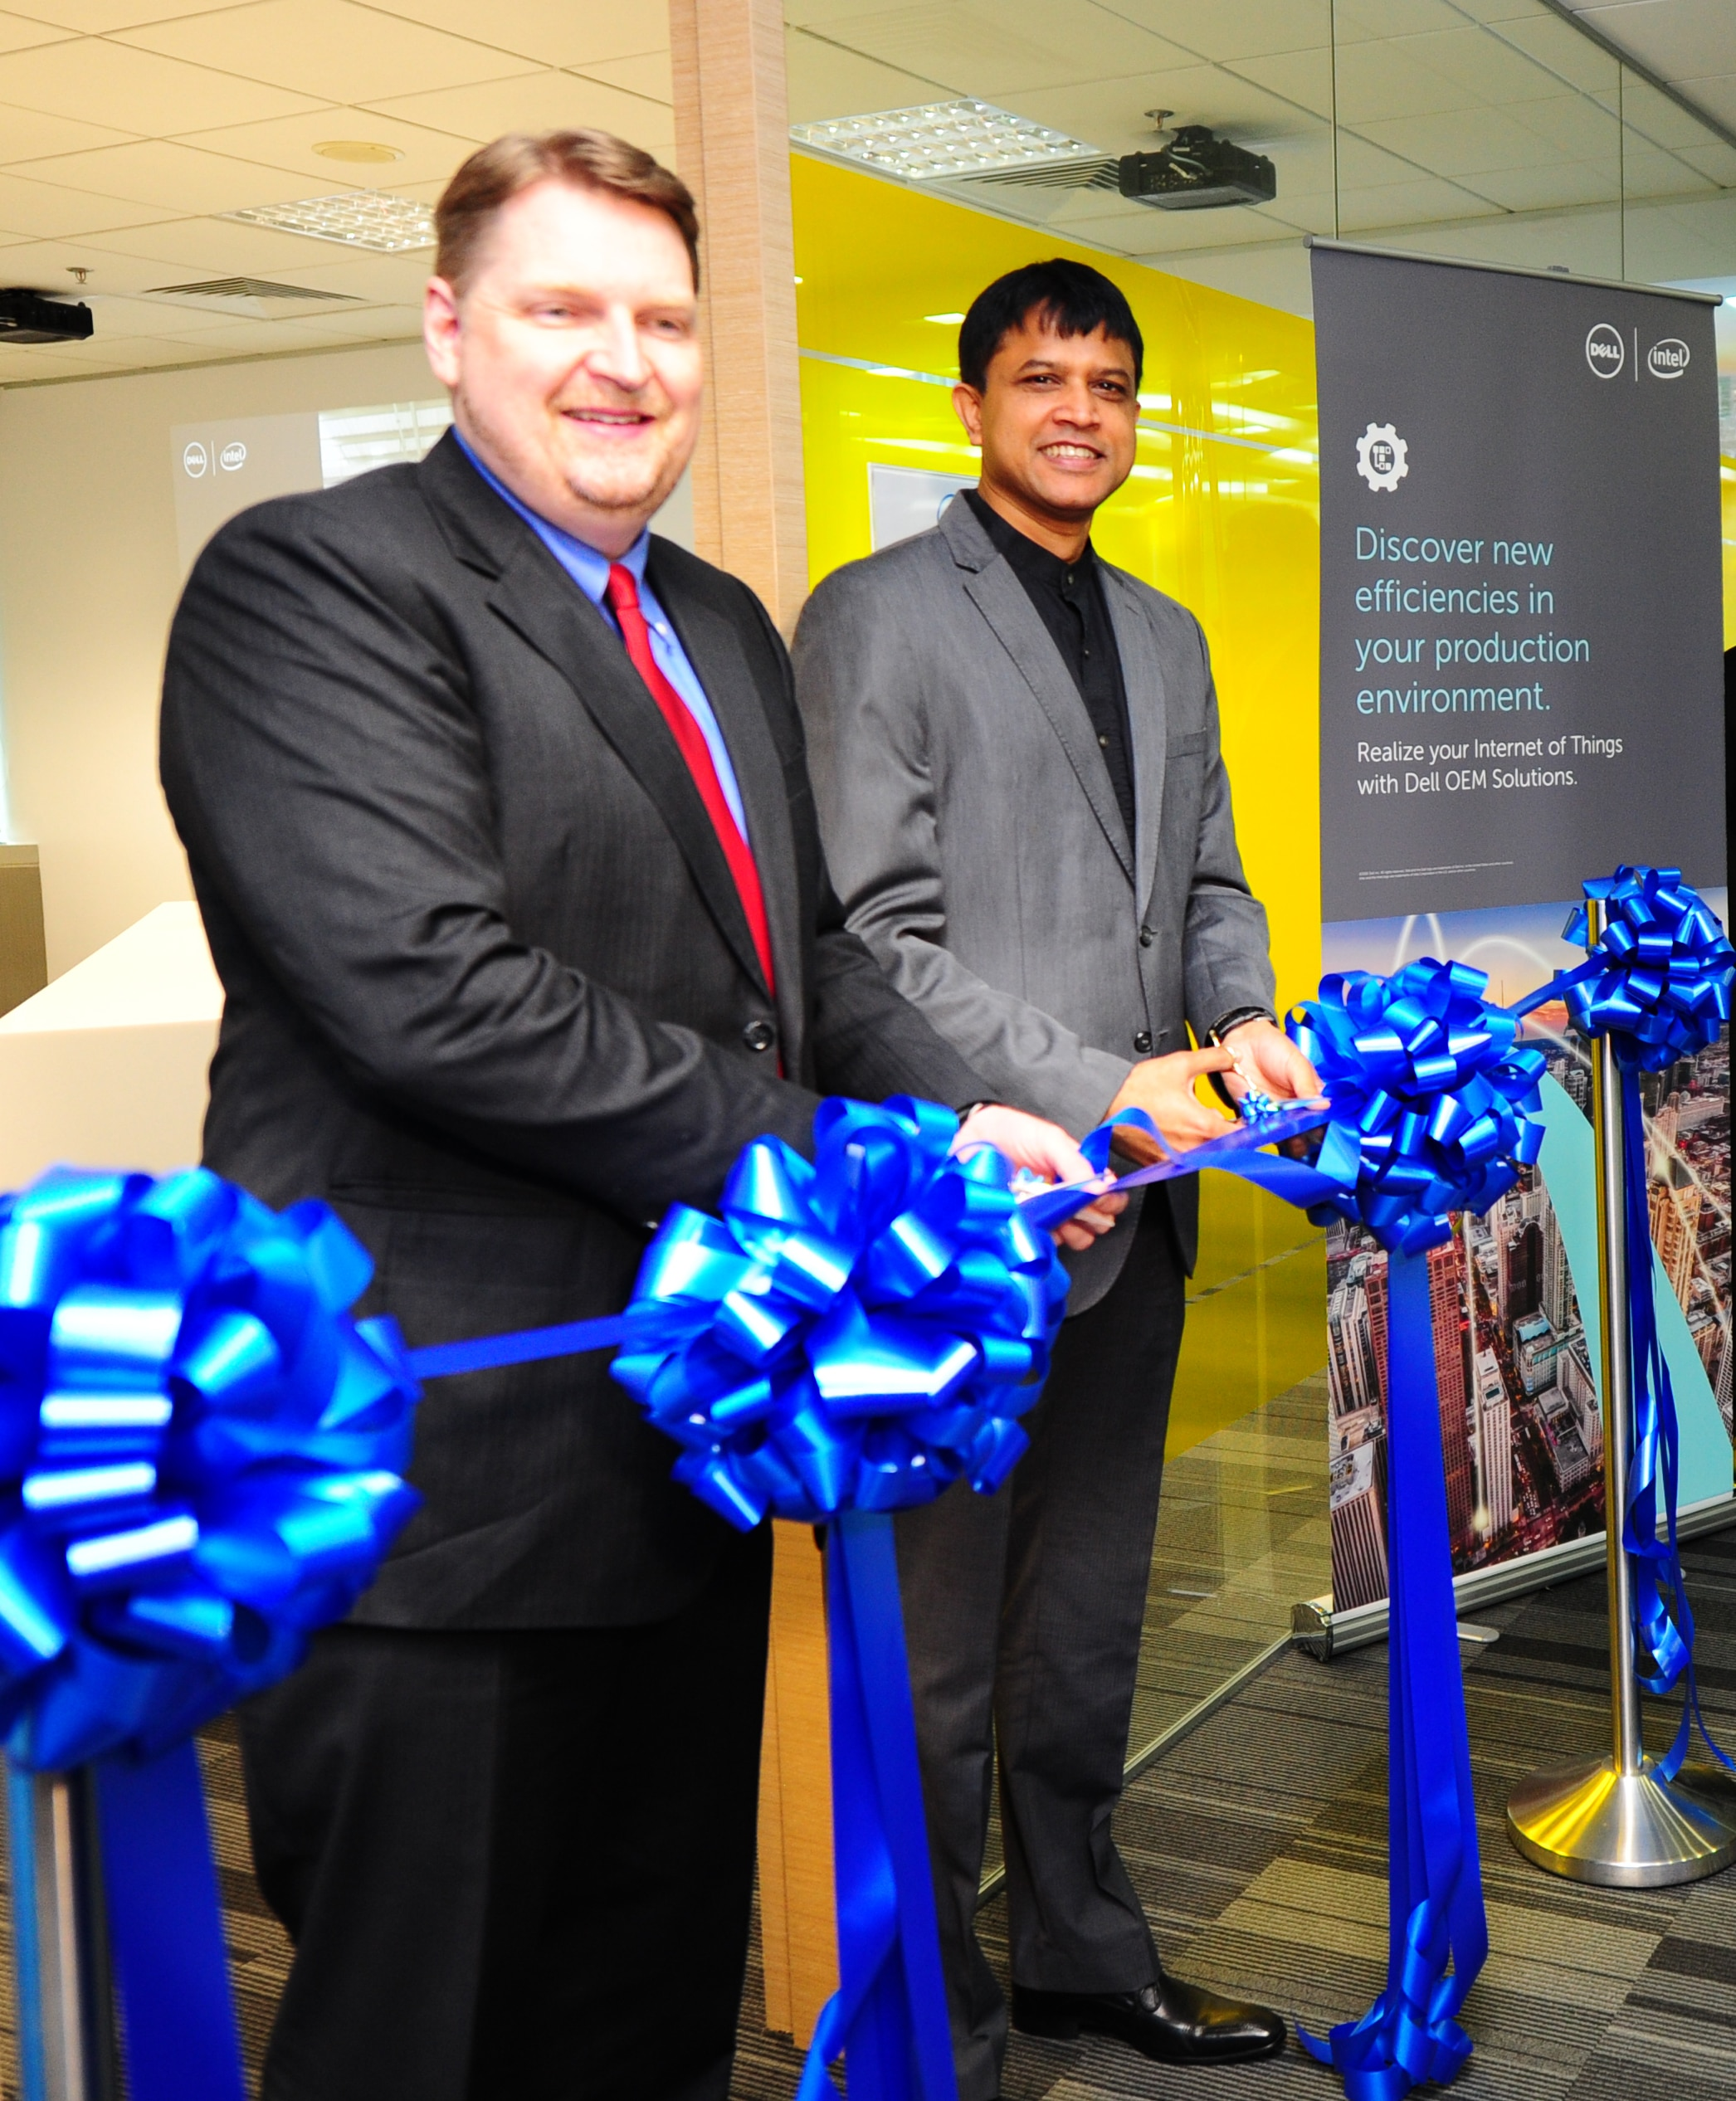 Launch of Dell IoT Lab in APJ in Singapore